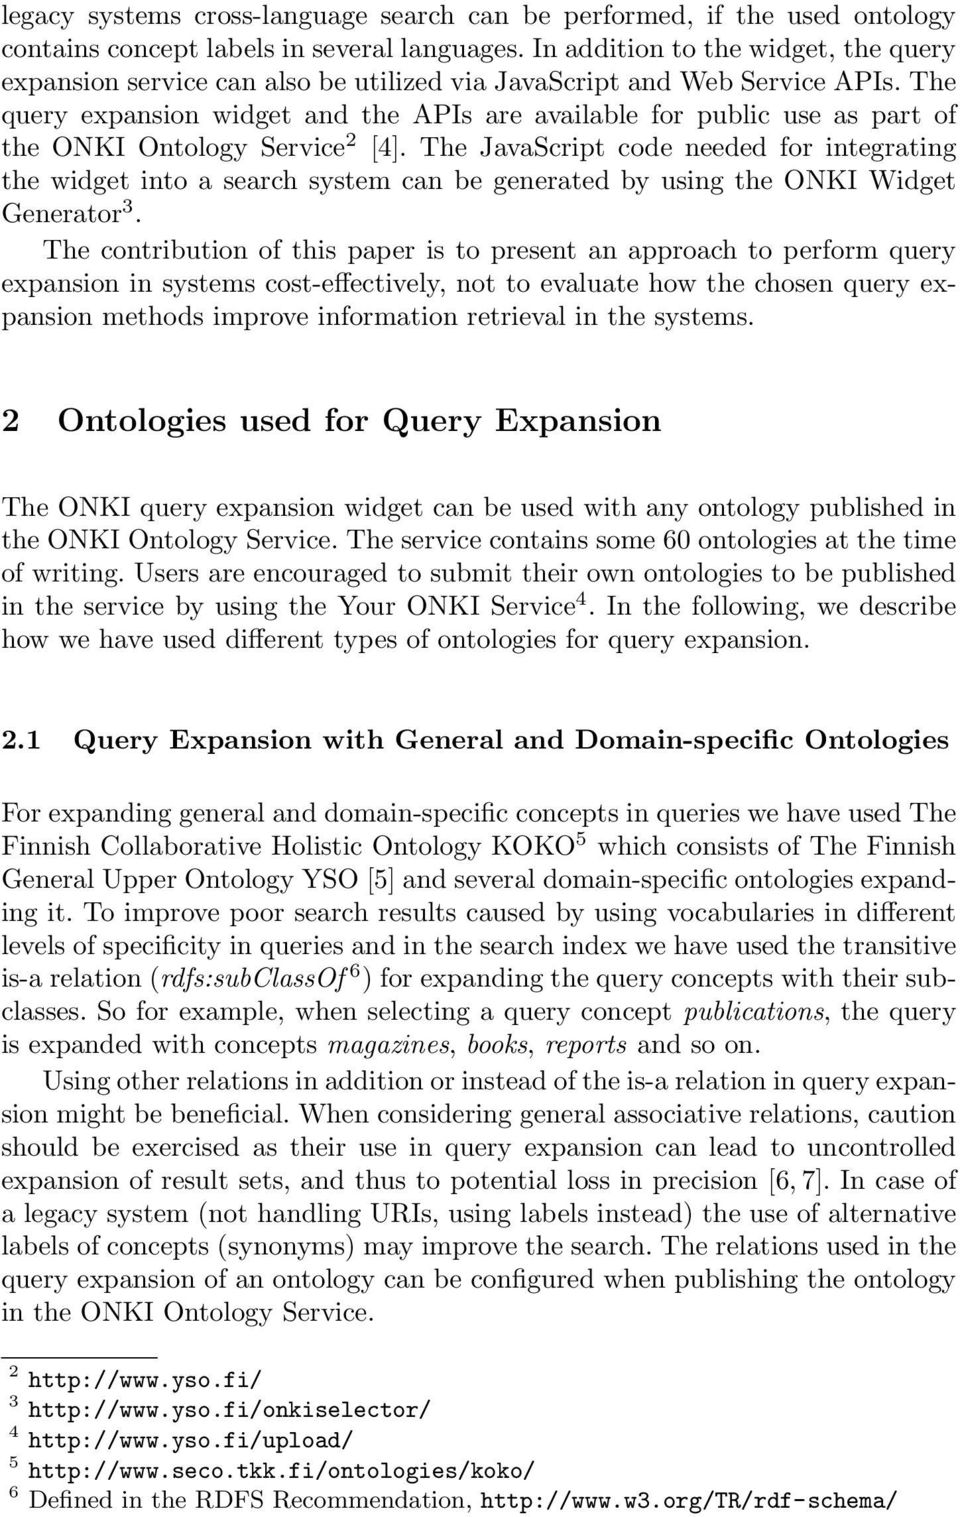 The query expansion widget and the APIs are available for public use as part of the ONKI Ontology Service 2 [4].